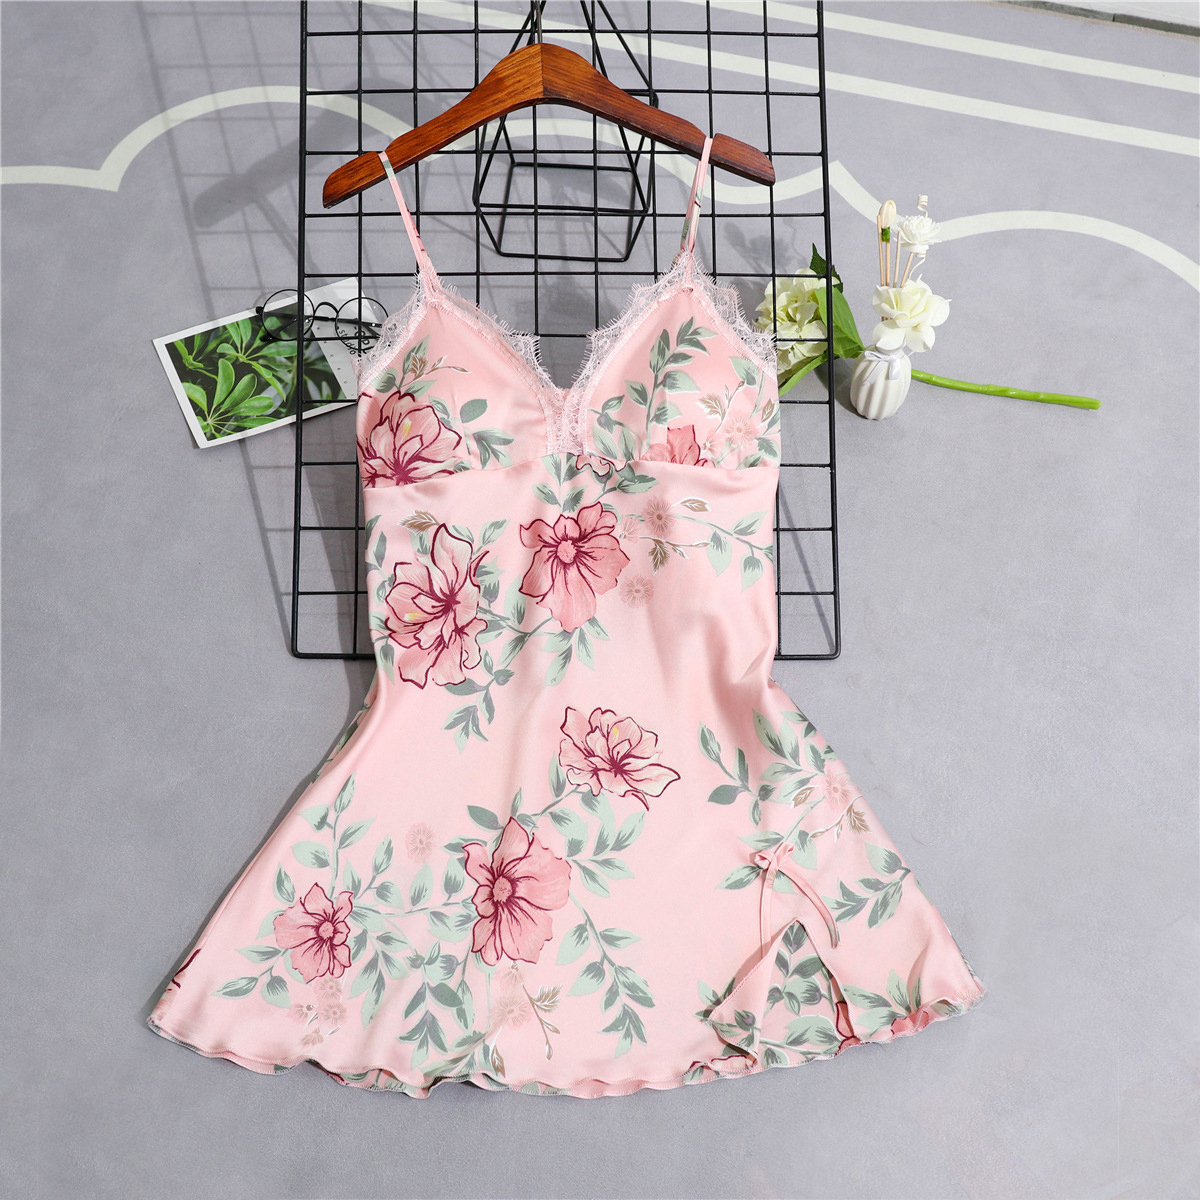 Sexy Womens Silky Sleep Robe Strap Top Sleepwear Nightdress Lady Home Wear   Nightgown   Bath Gown   Sleepshirts   Bathrobe